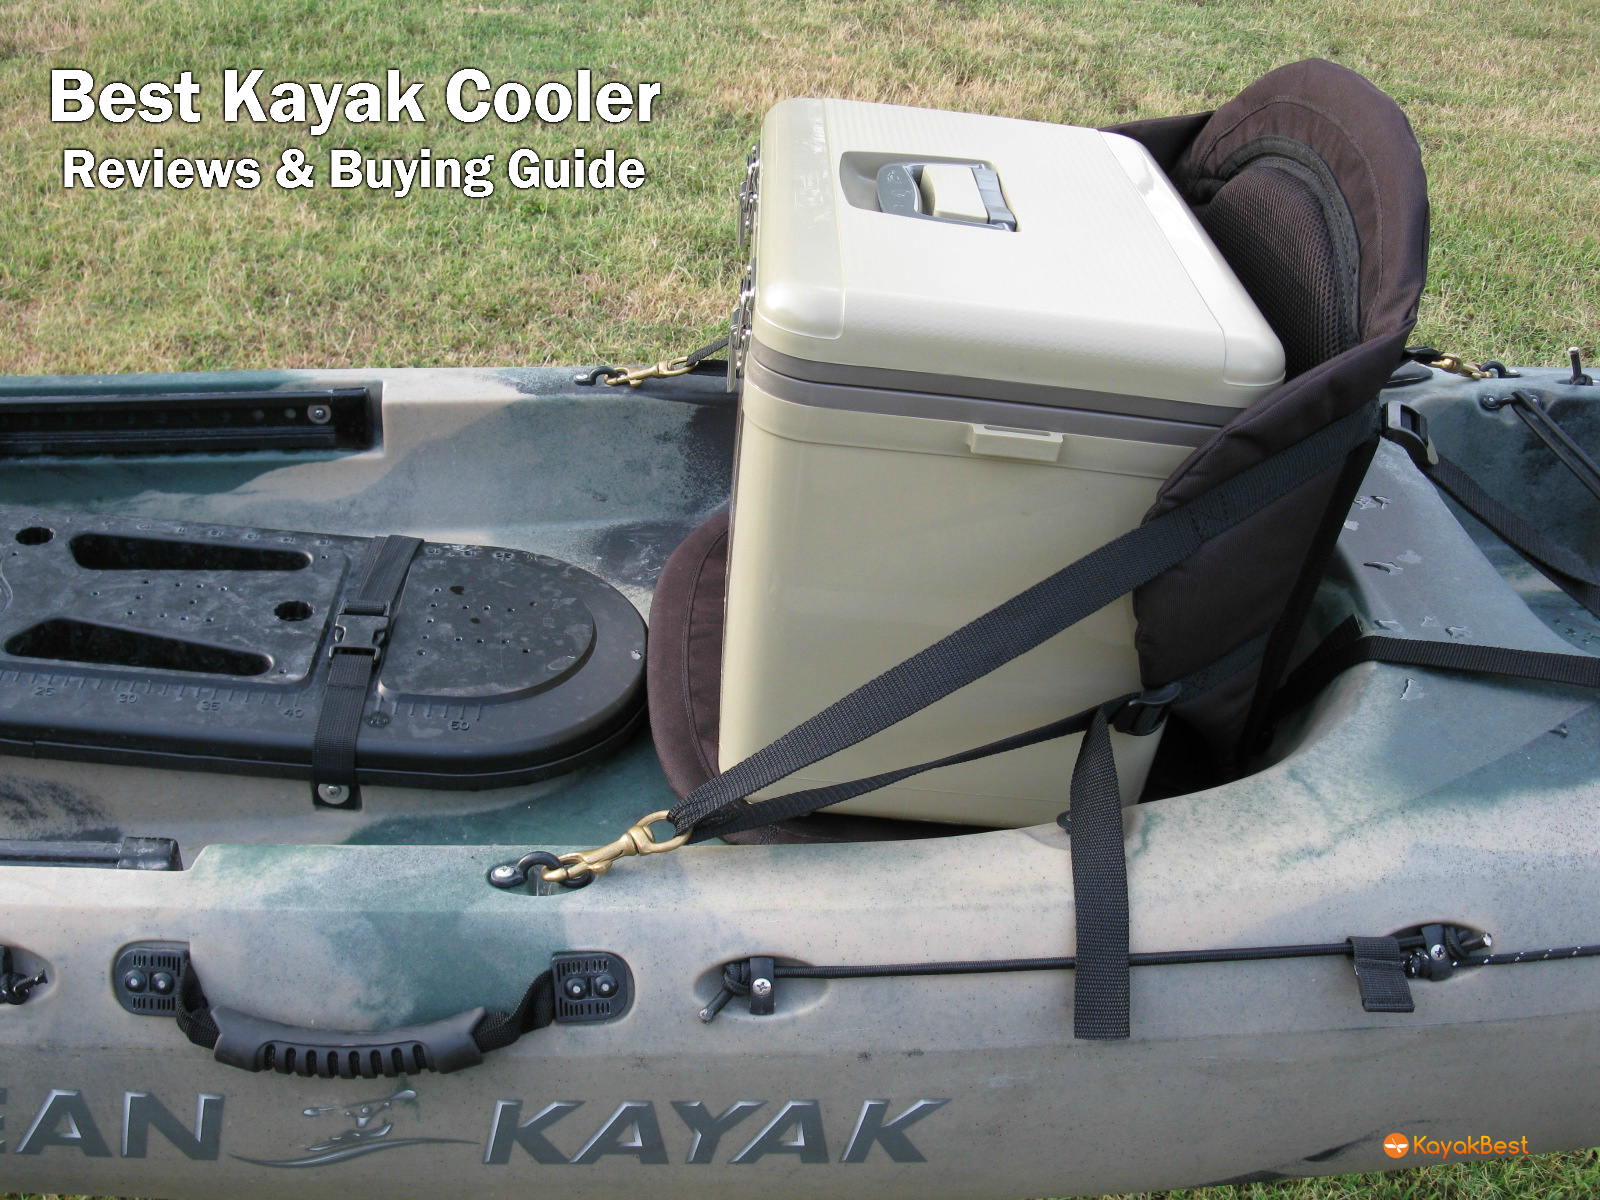 The 10 Best Kayak Coolers 2018 – Top Reviews & Buyer's Guide